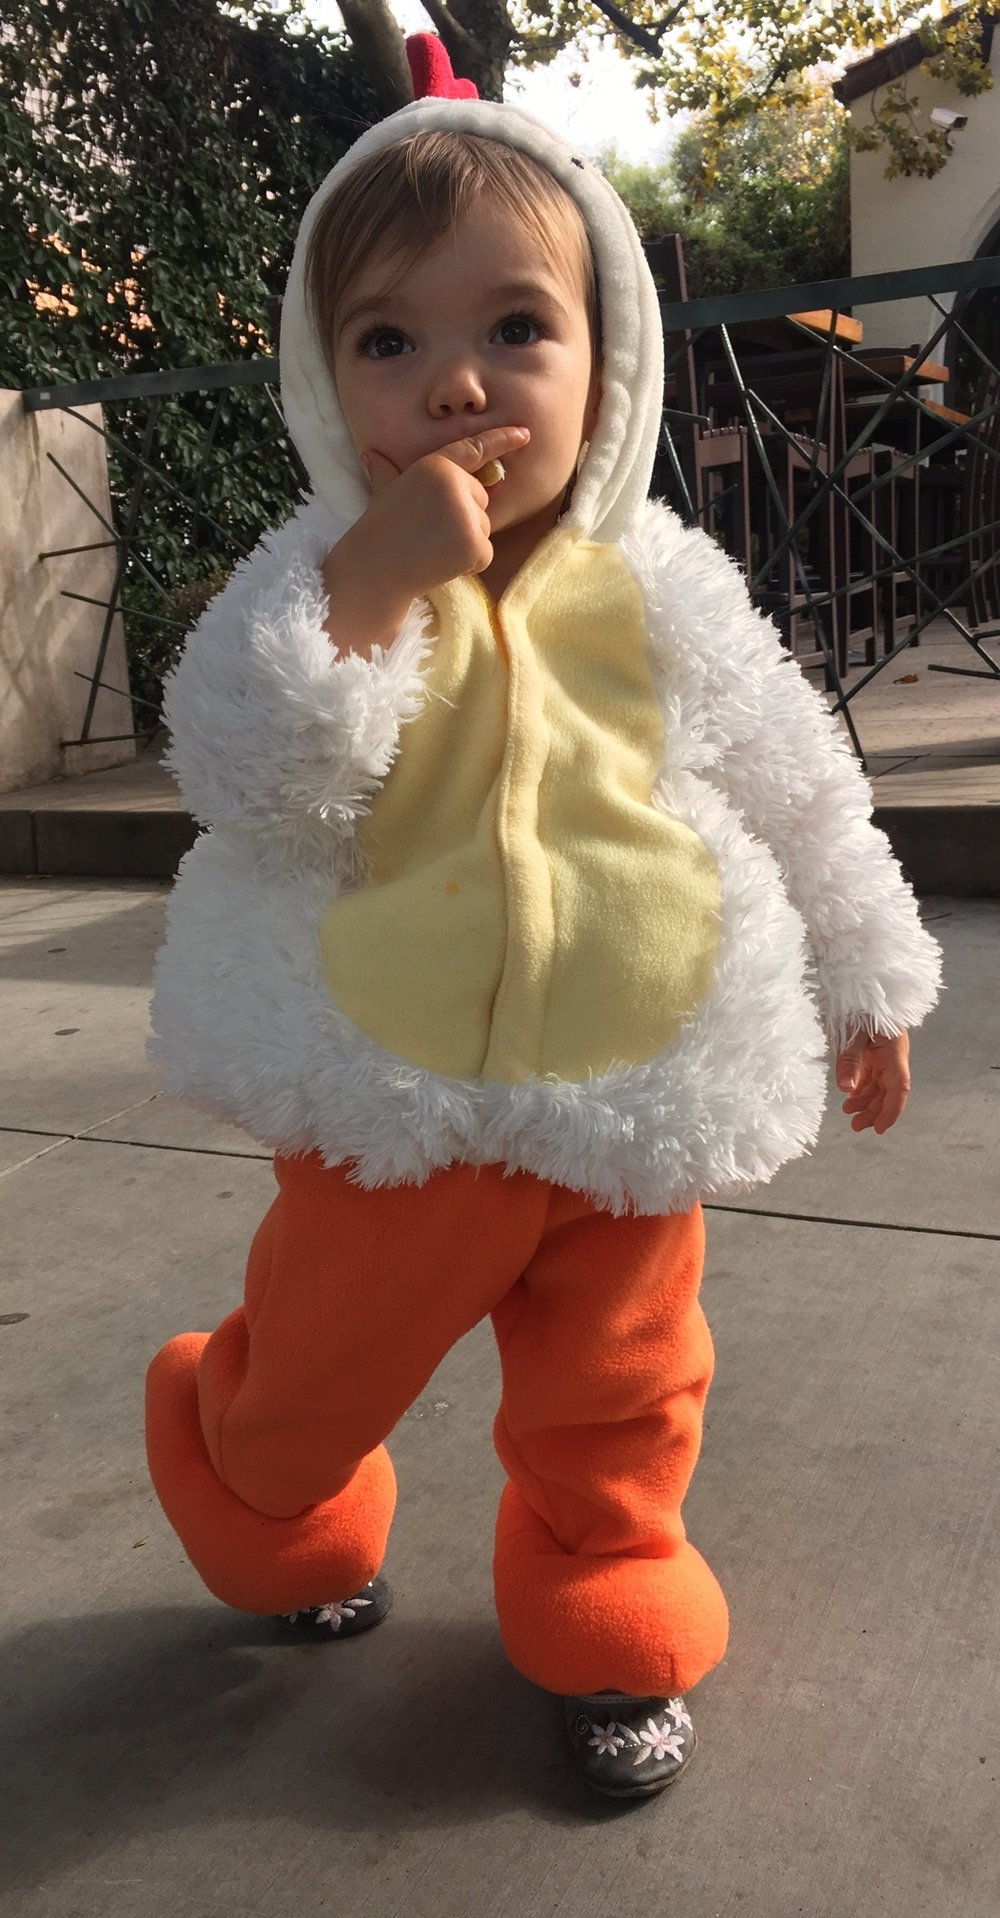 Little Hazel Hay following in her family footsteps: she was a pasture raised, certified organic, soy free chicken for Halloween.